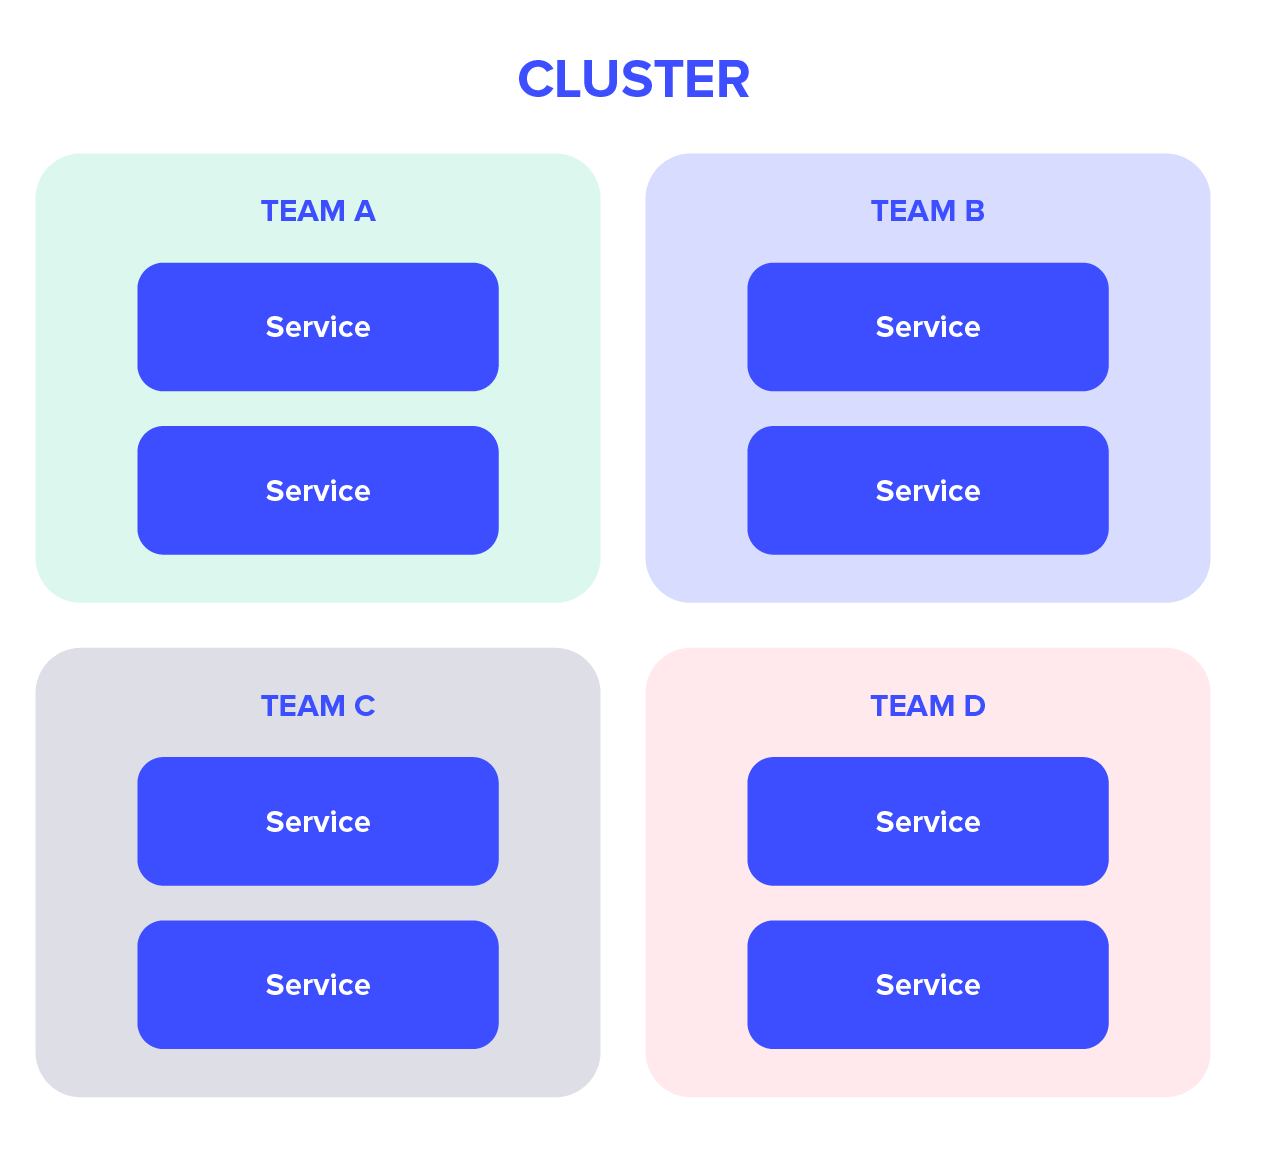 cluster view: the services of each team are in the team namesapce